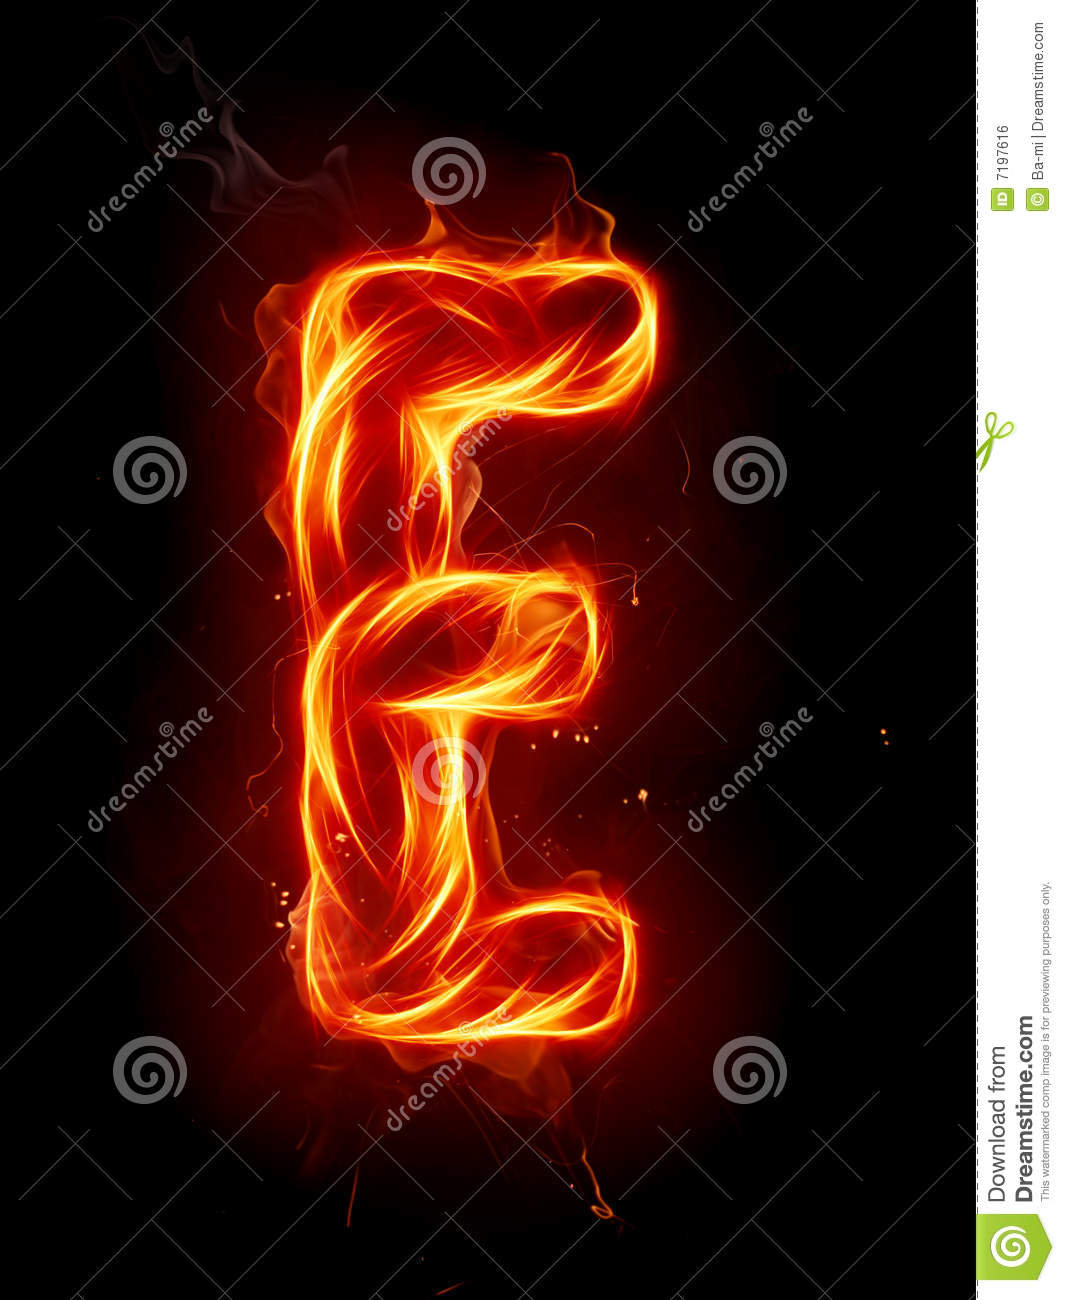 series of fiery letters and numbers.